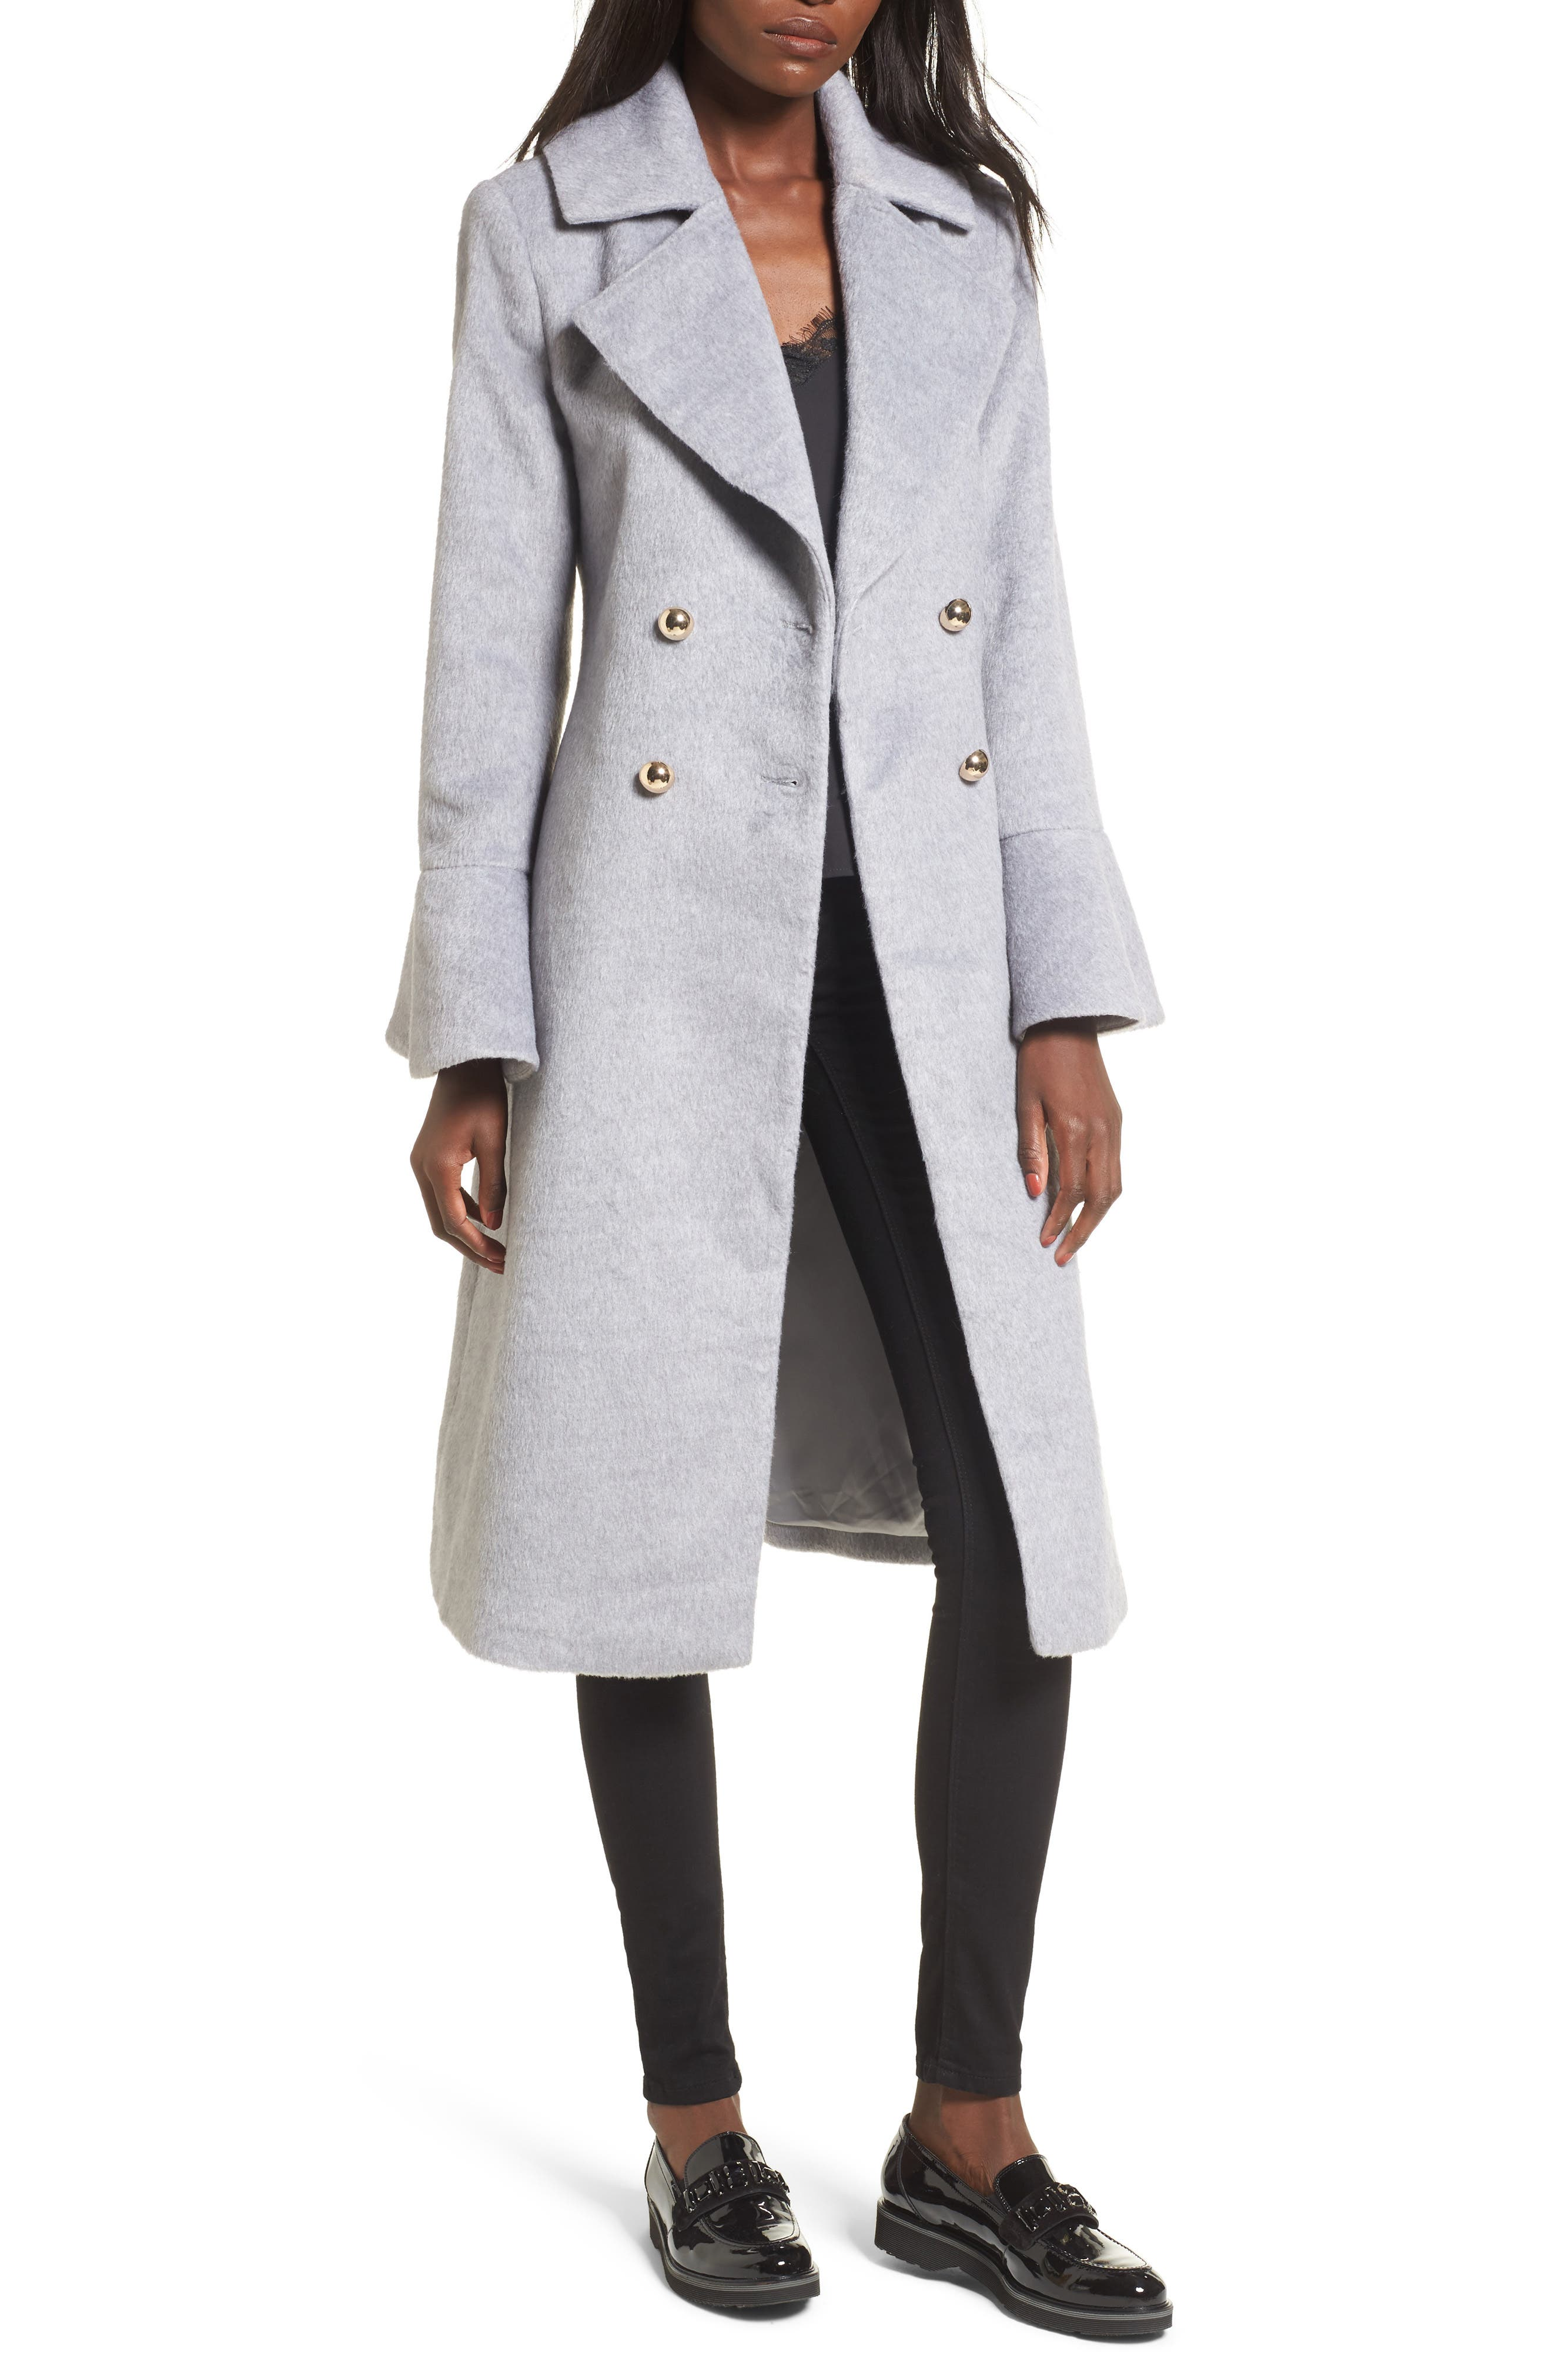 Intuition Water Repellent Coat,                             Main thumbnail 1, color,                             020